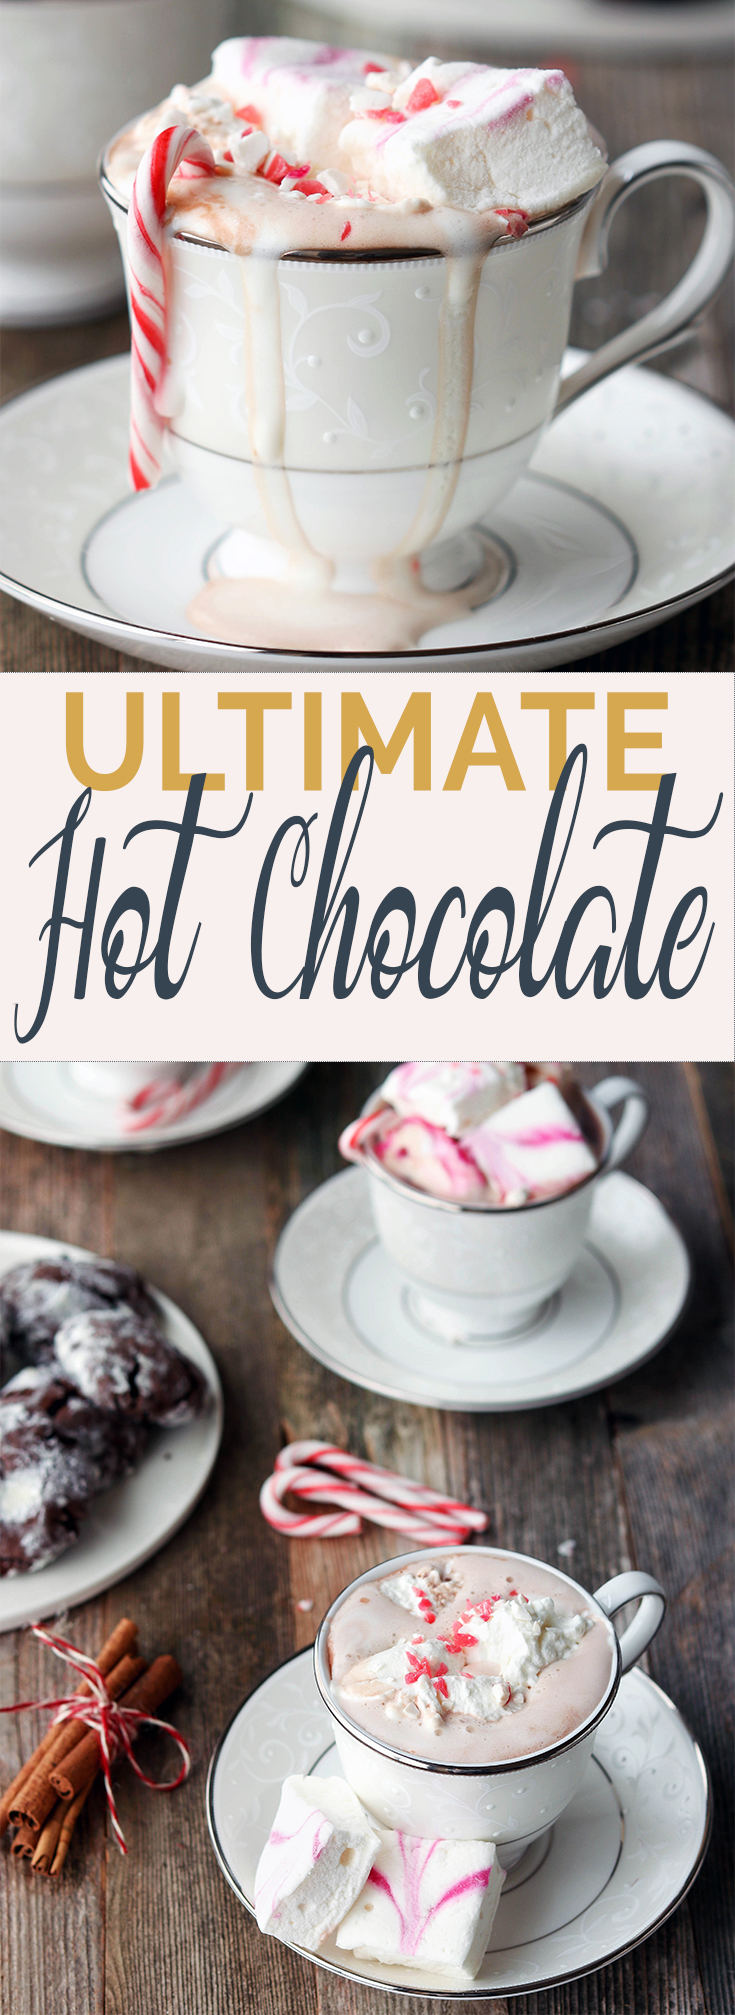 A luscious, creamy hot chocolate made with whole milk, cocoa powder, coconut sugar, vanilla. salt and spices. Serve warm with whipped cream and homemade marshmallows.